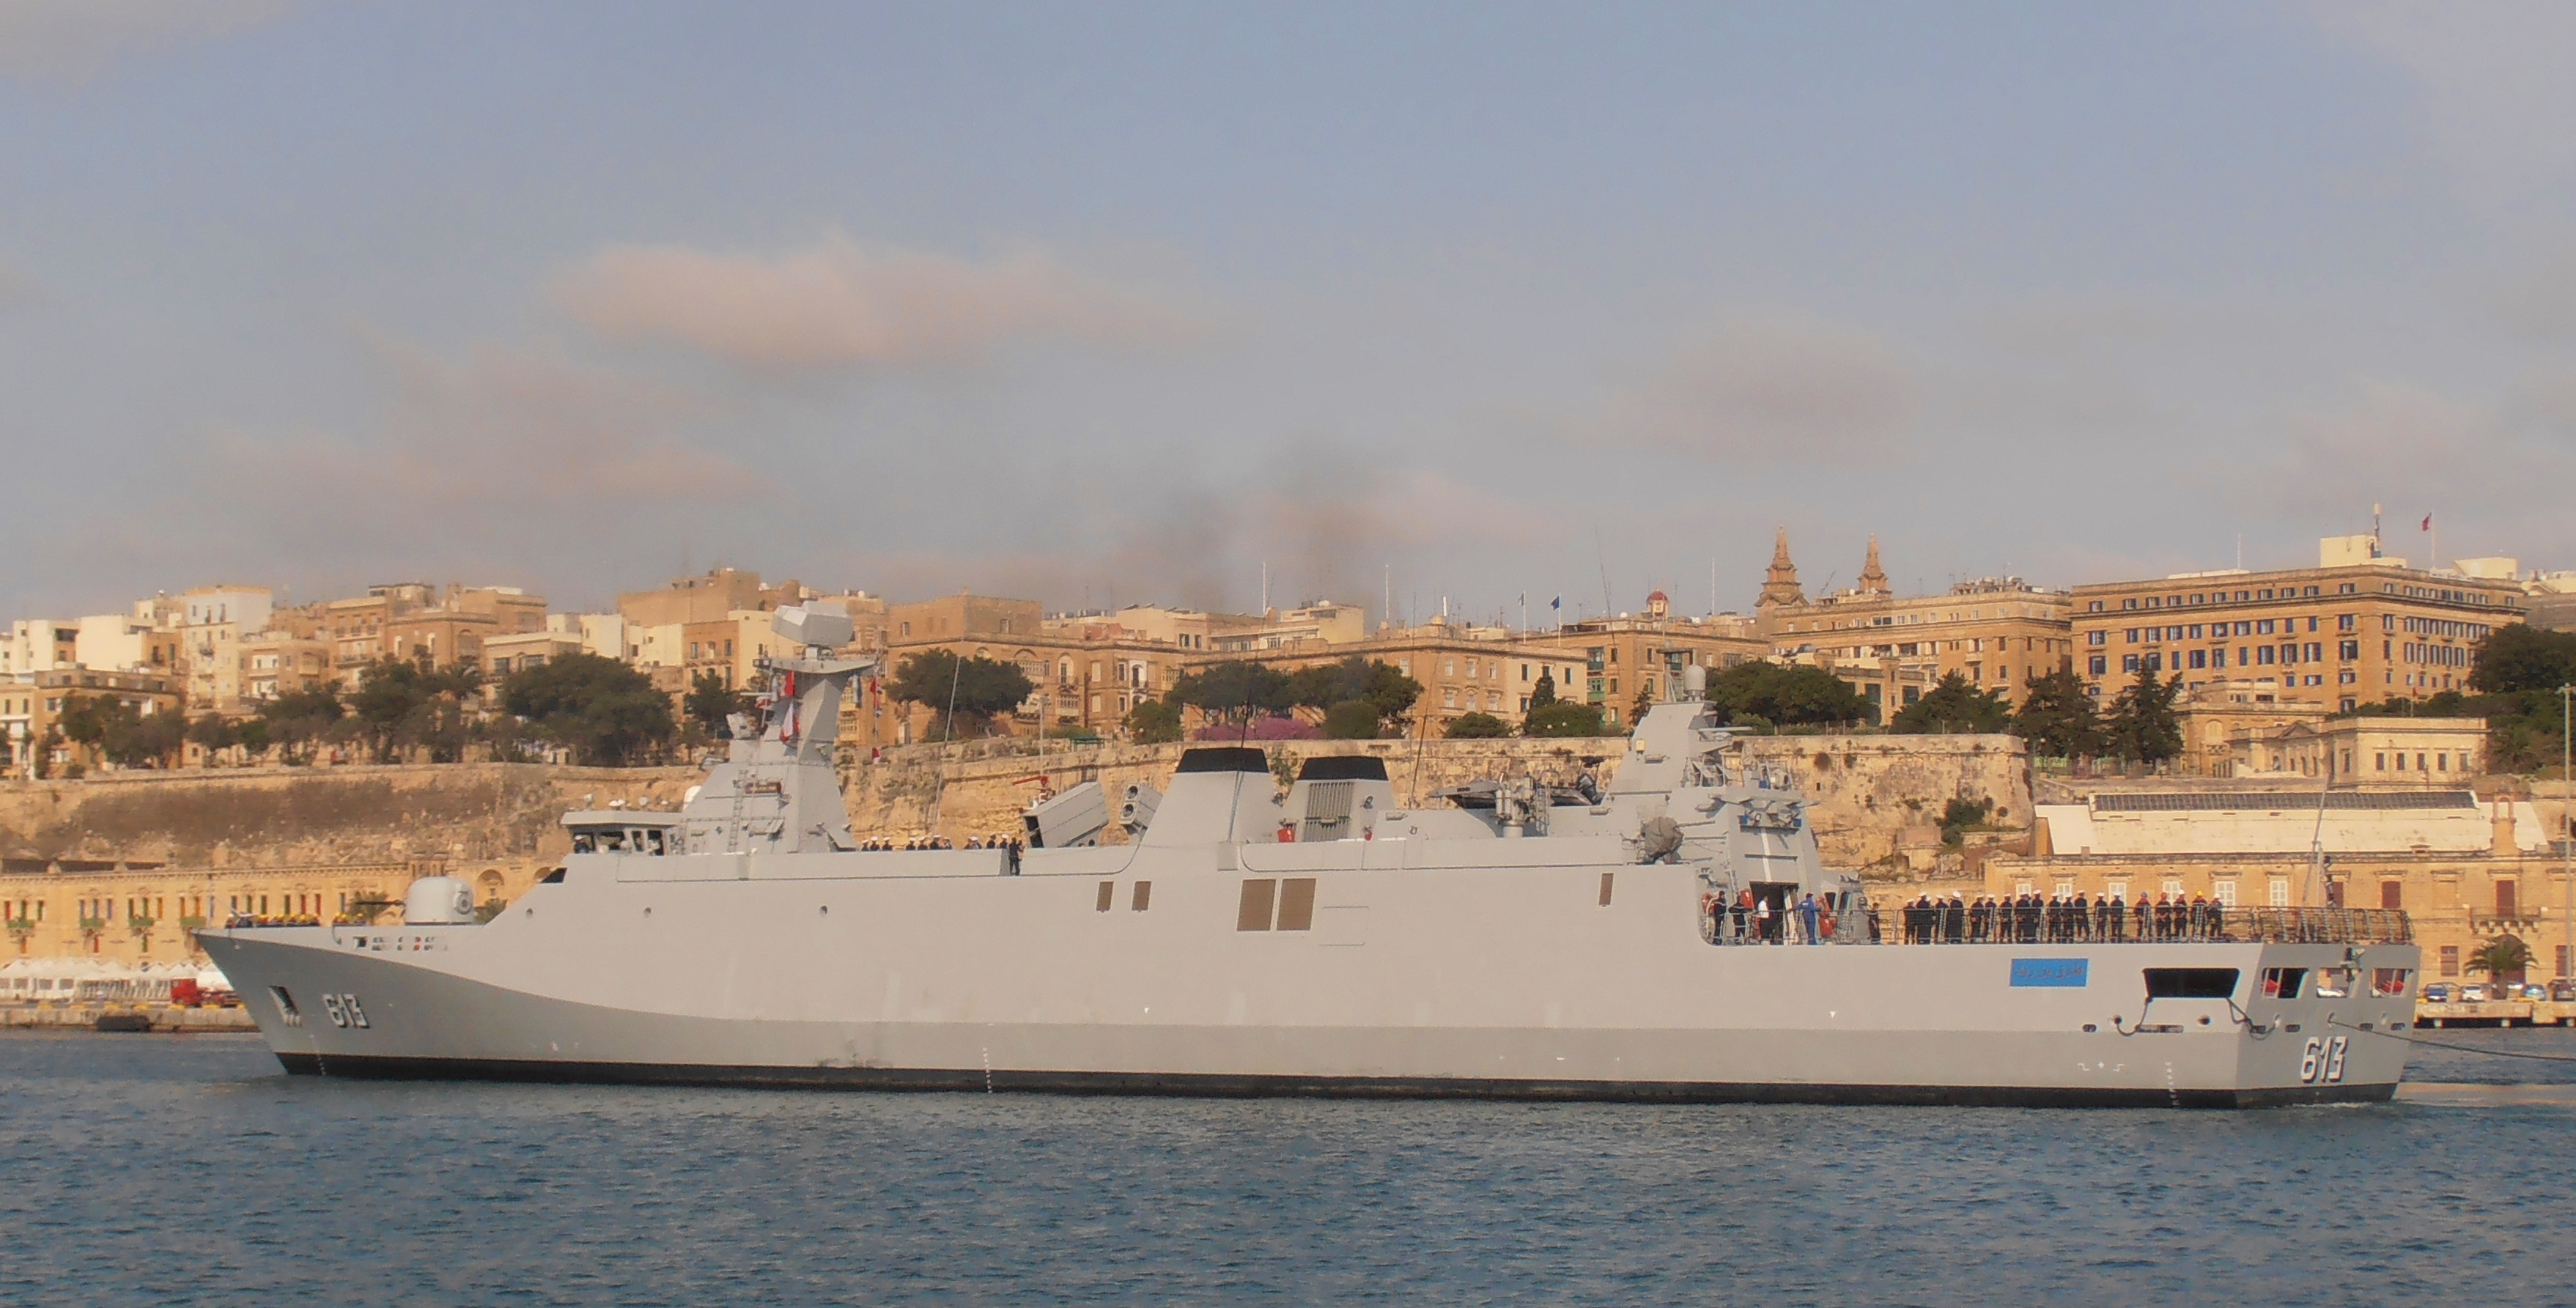 Royal Moroccan Navy Sigma class frigates / Frégates marocaines multimissions Sigma - Page 20 2230492